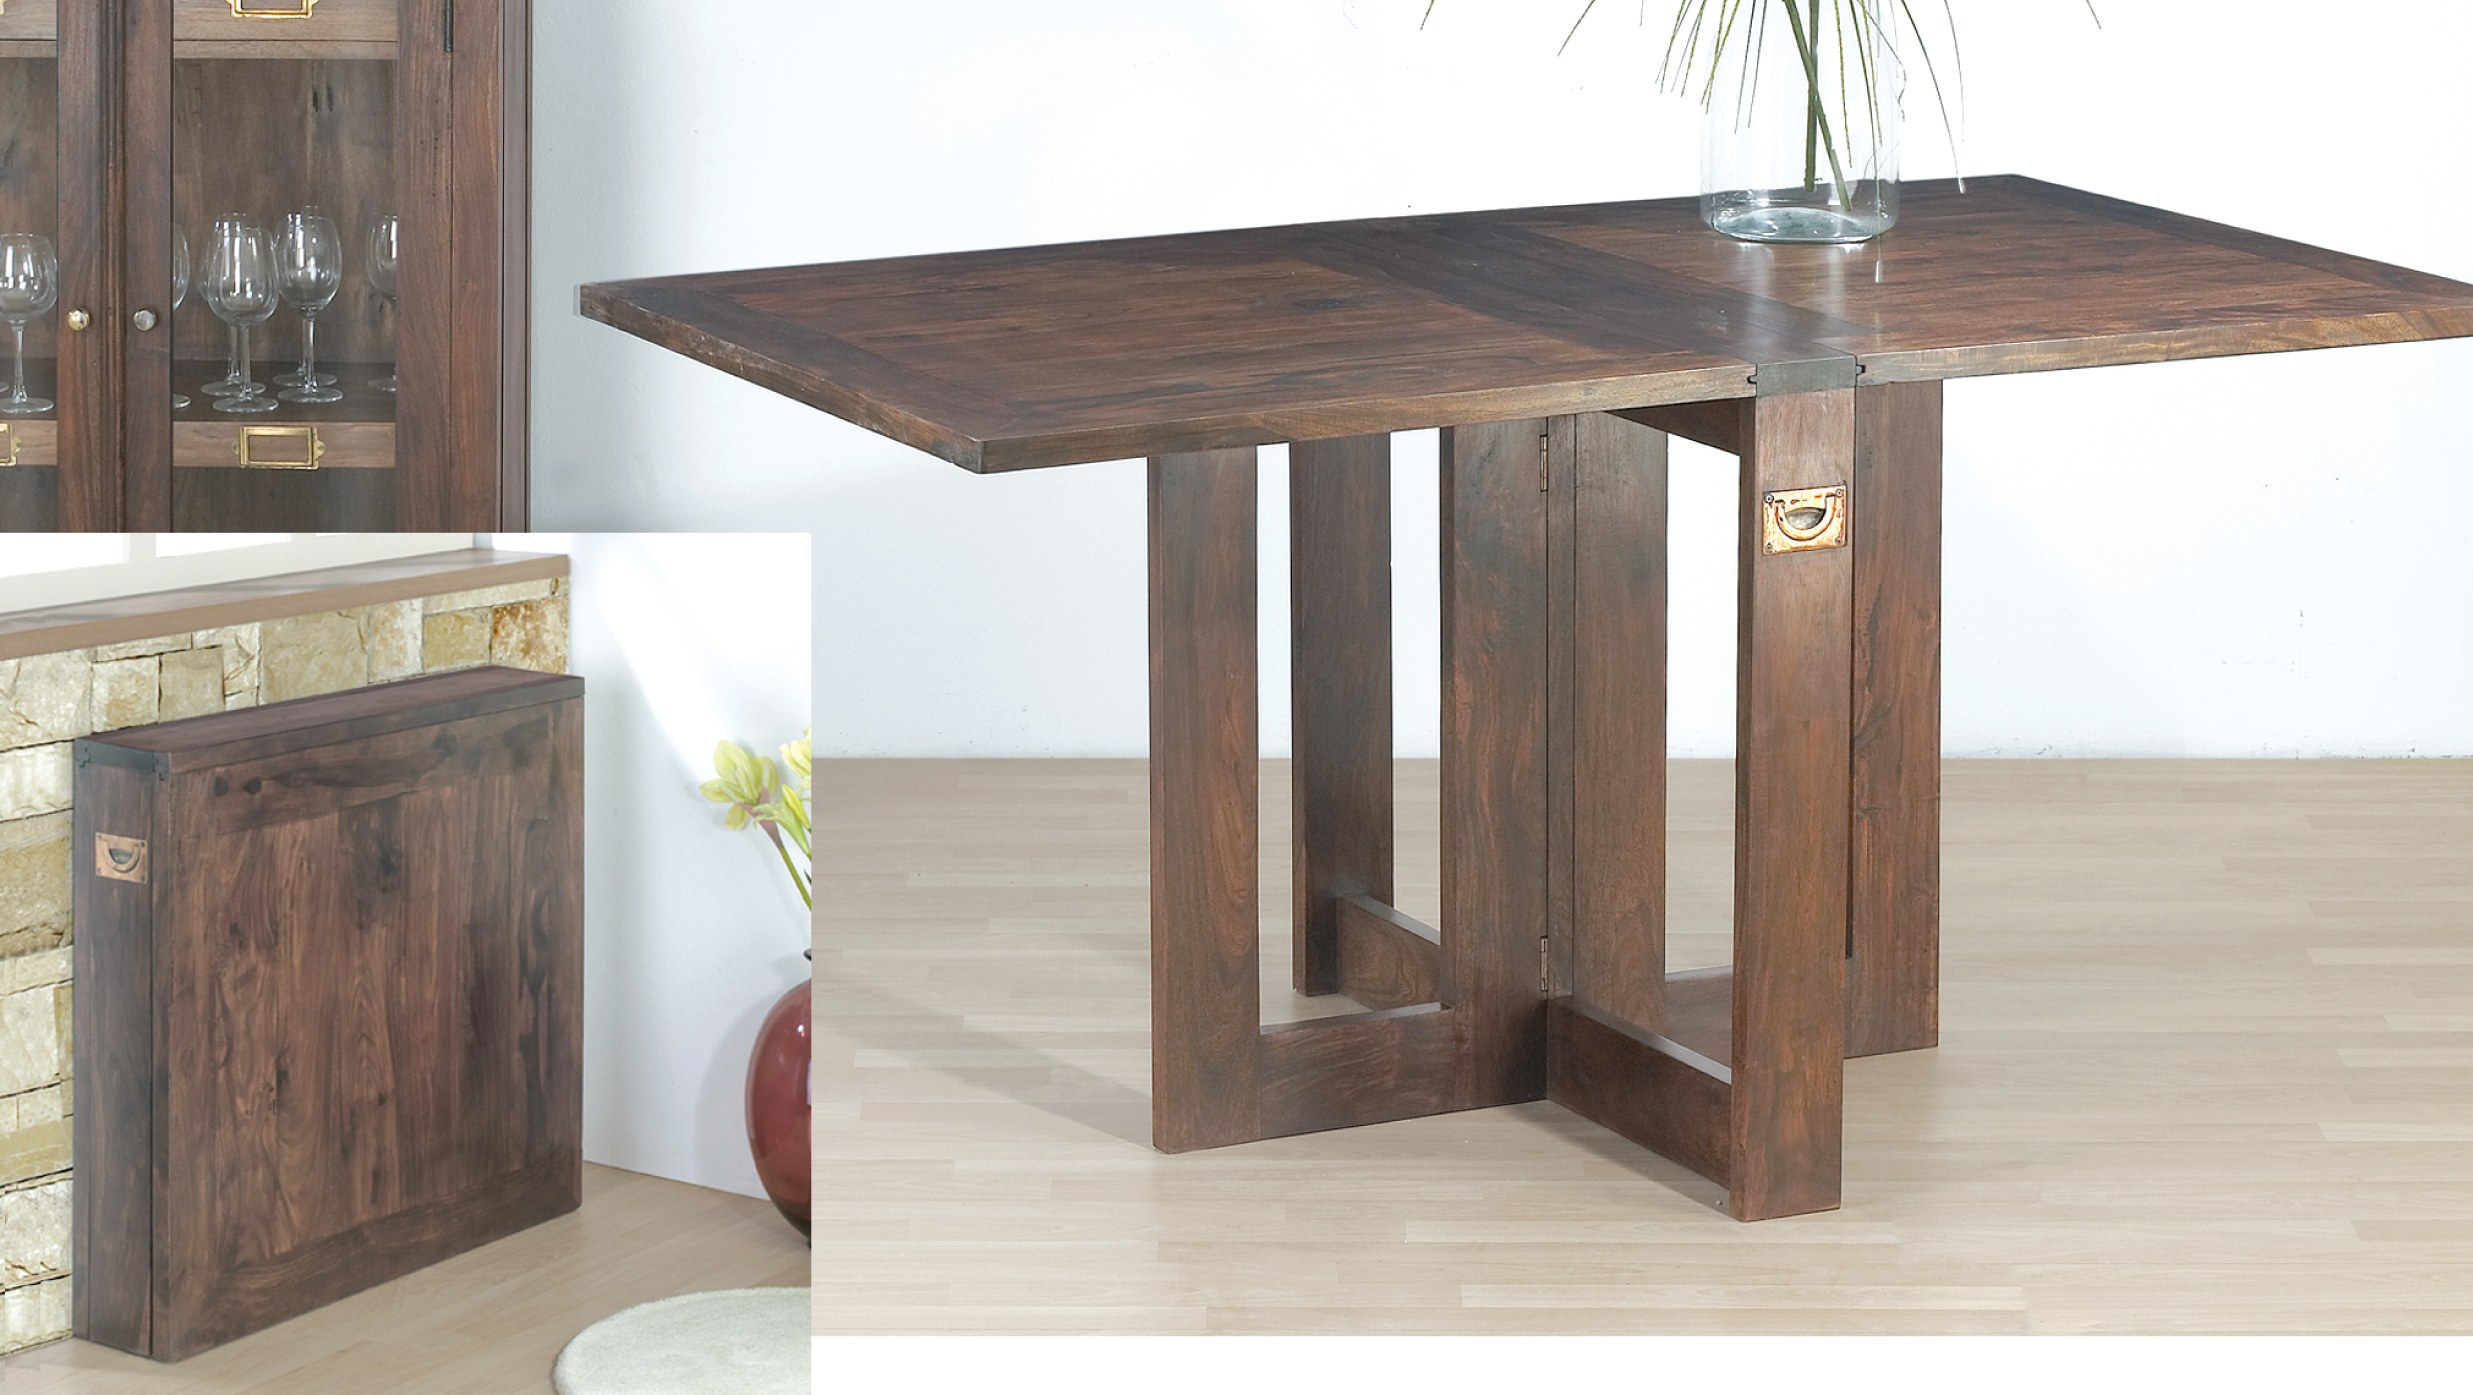 Fold Up Wooden Tables Folding Dining Table Online Shopping